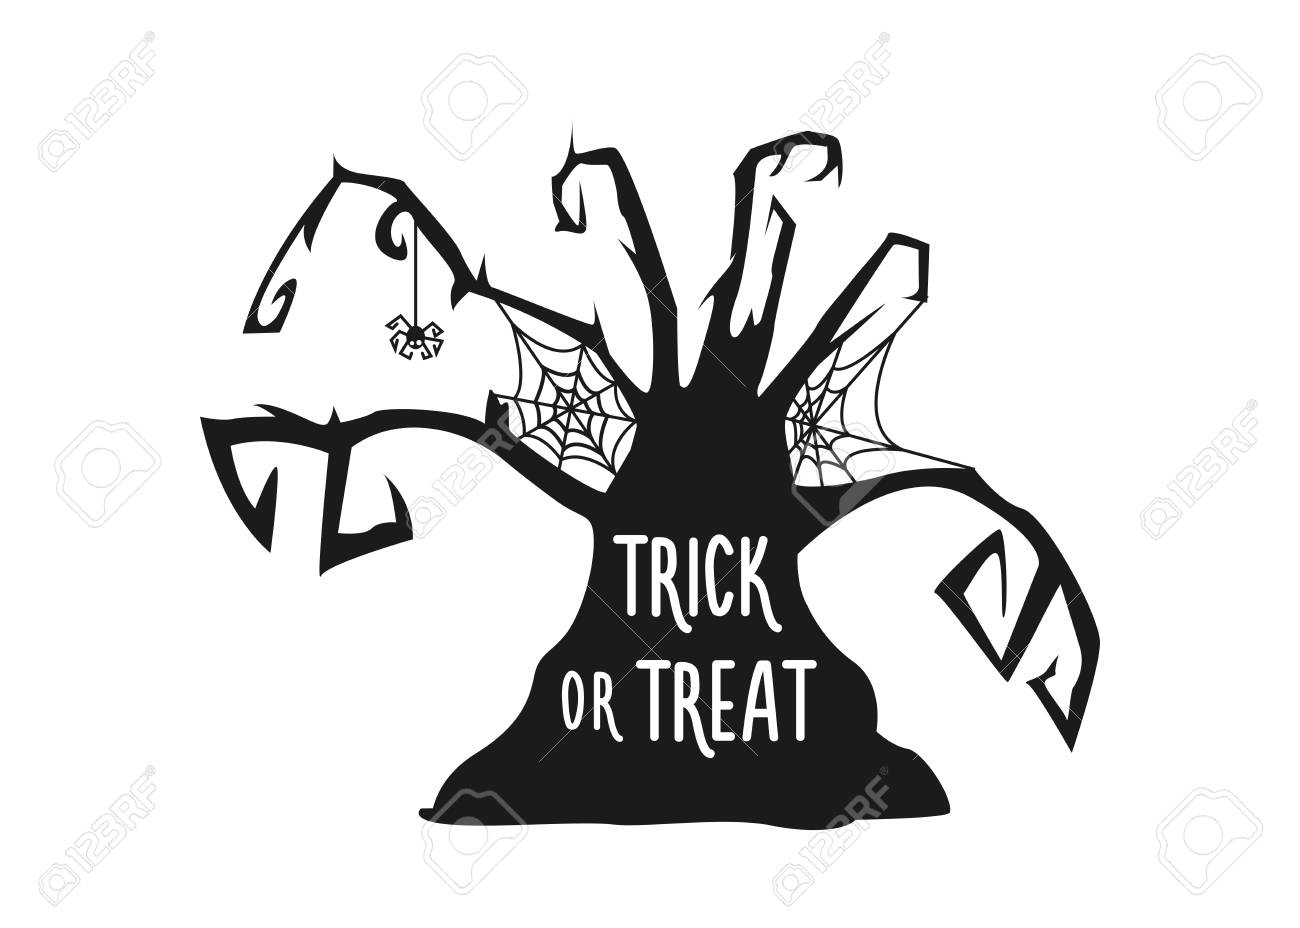 Halloween Trick Or Treat Silhouette.Scary Haunted Tree Silhouette With Trick Or Treat Halloween Lettering